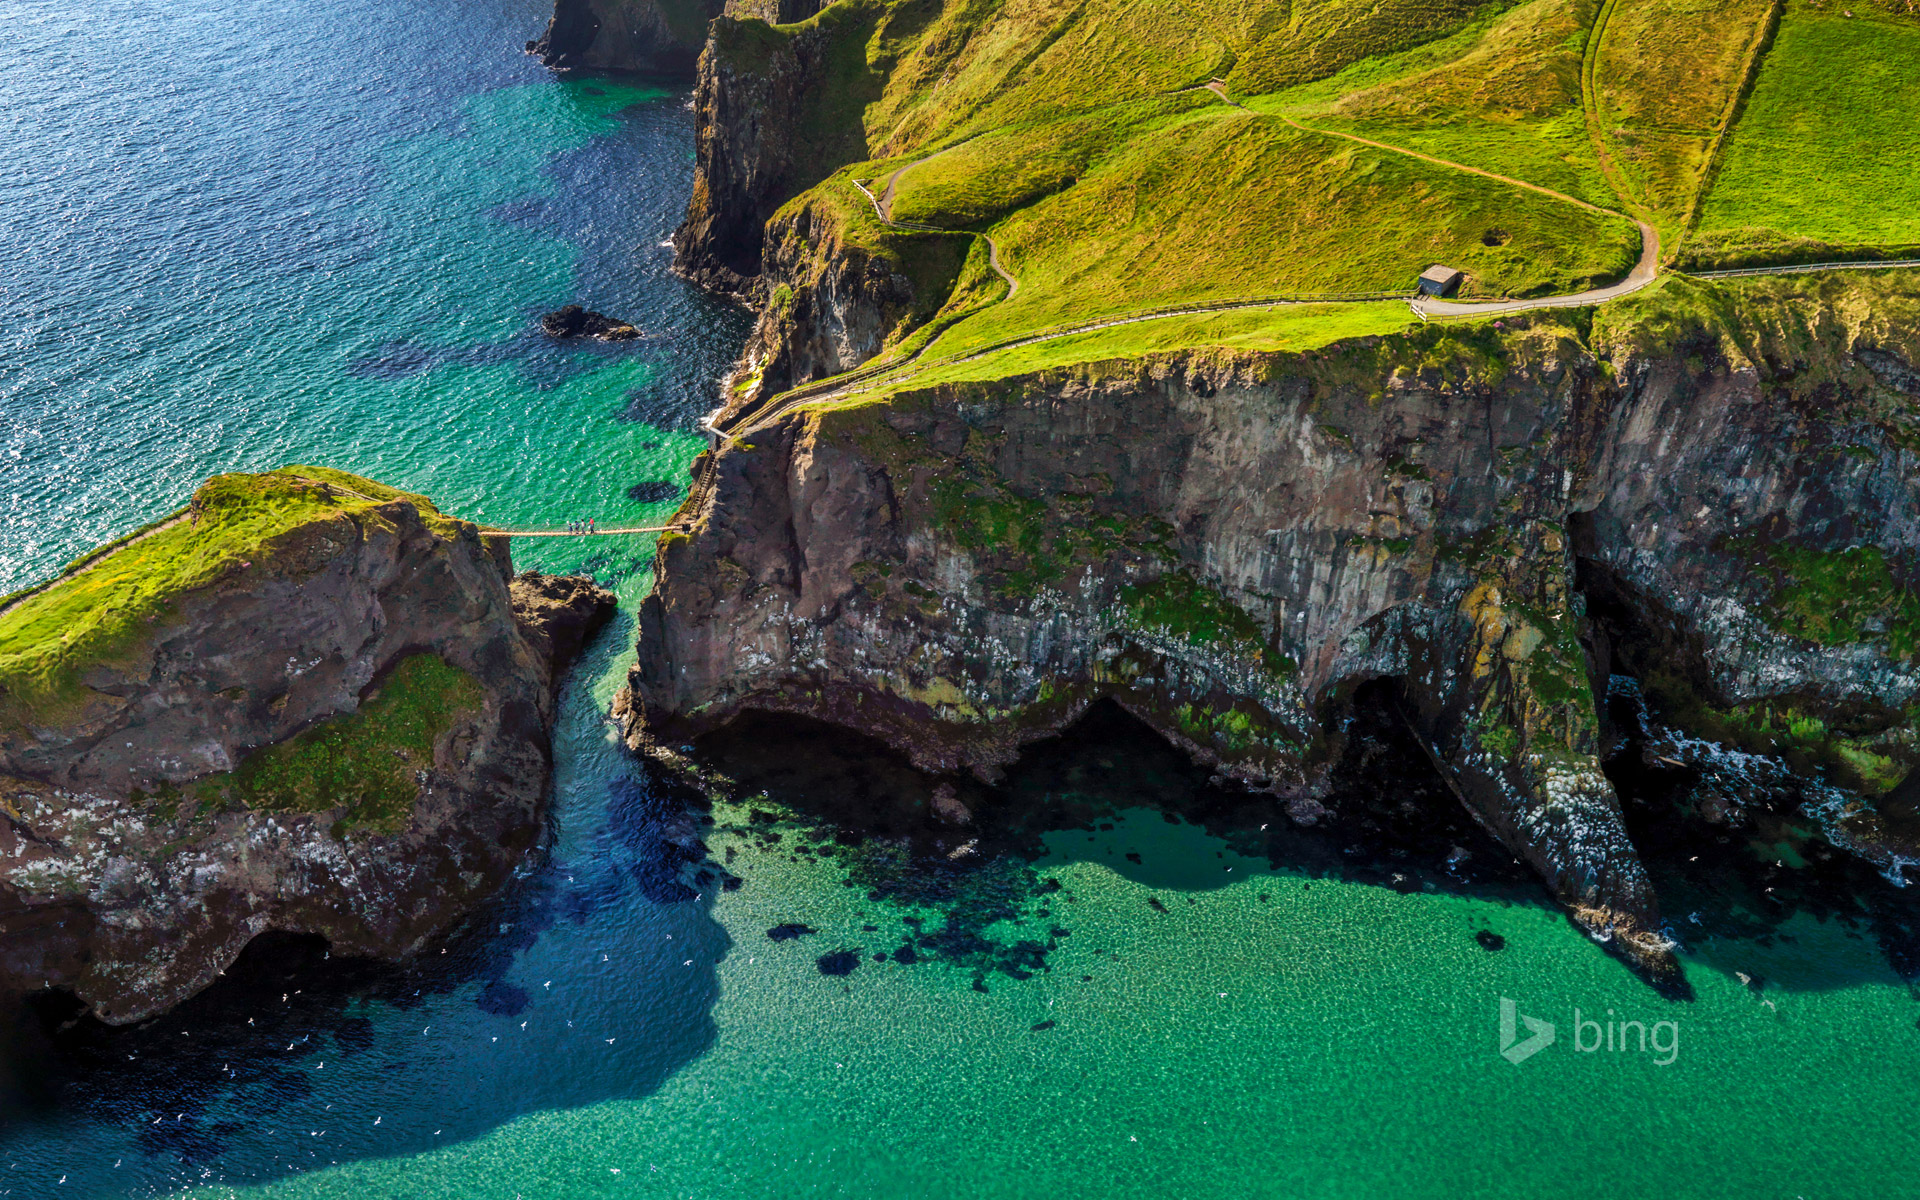 Carrick-a-Rede rope bridge near Ballintoy, Northern Ireland